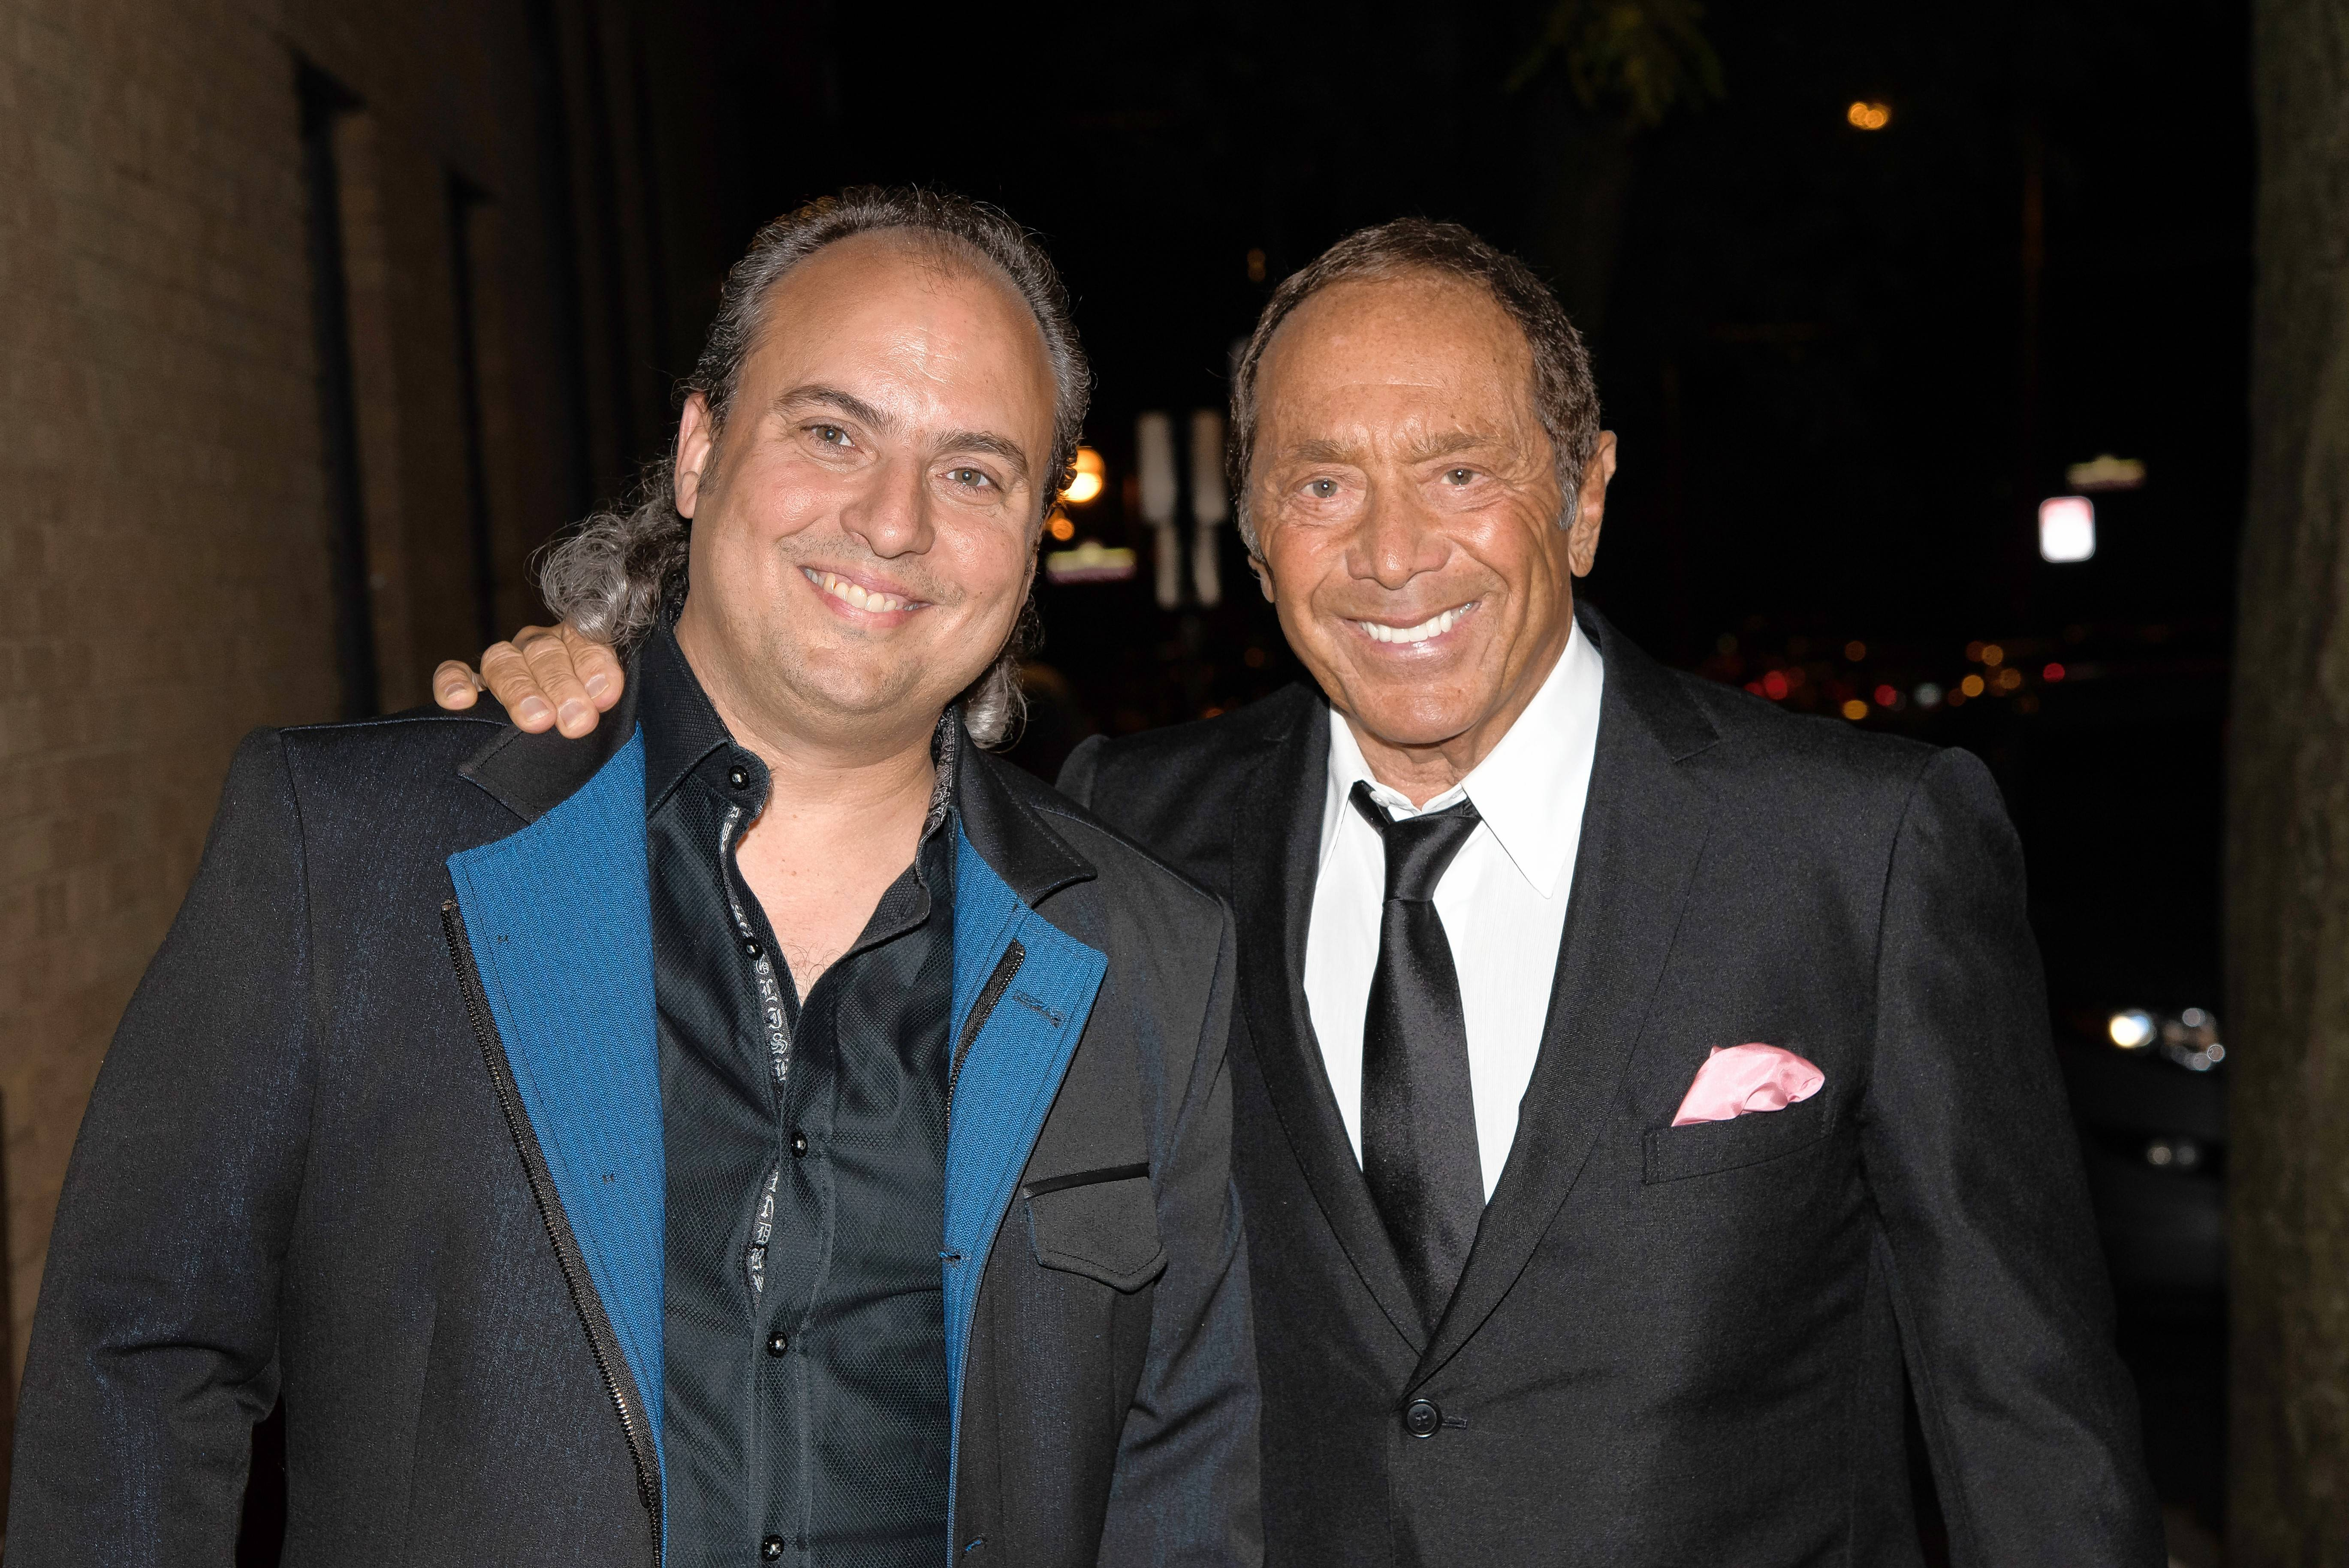 Singer Paul Anka, right, shares a moment with Arcada Theatre owner Ron Onesti before Anka's two shows last week.